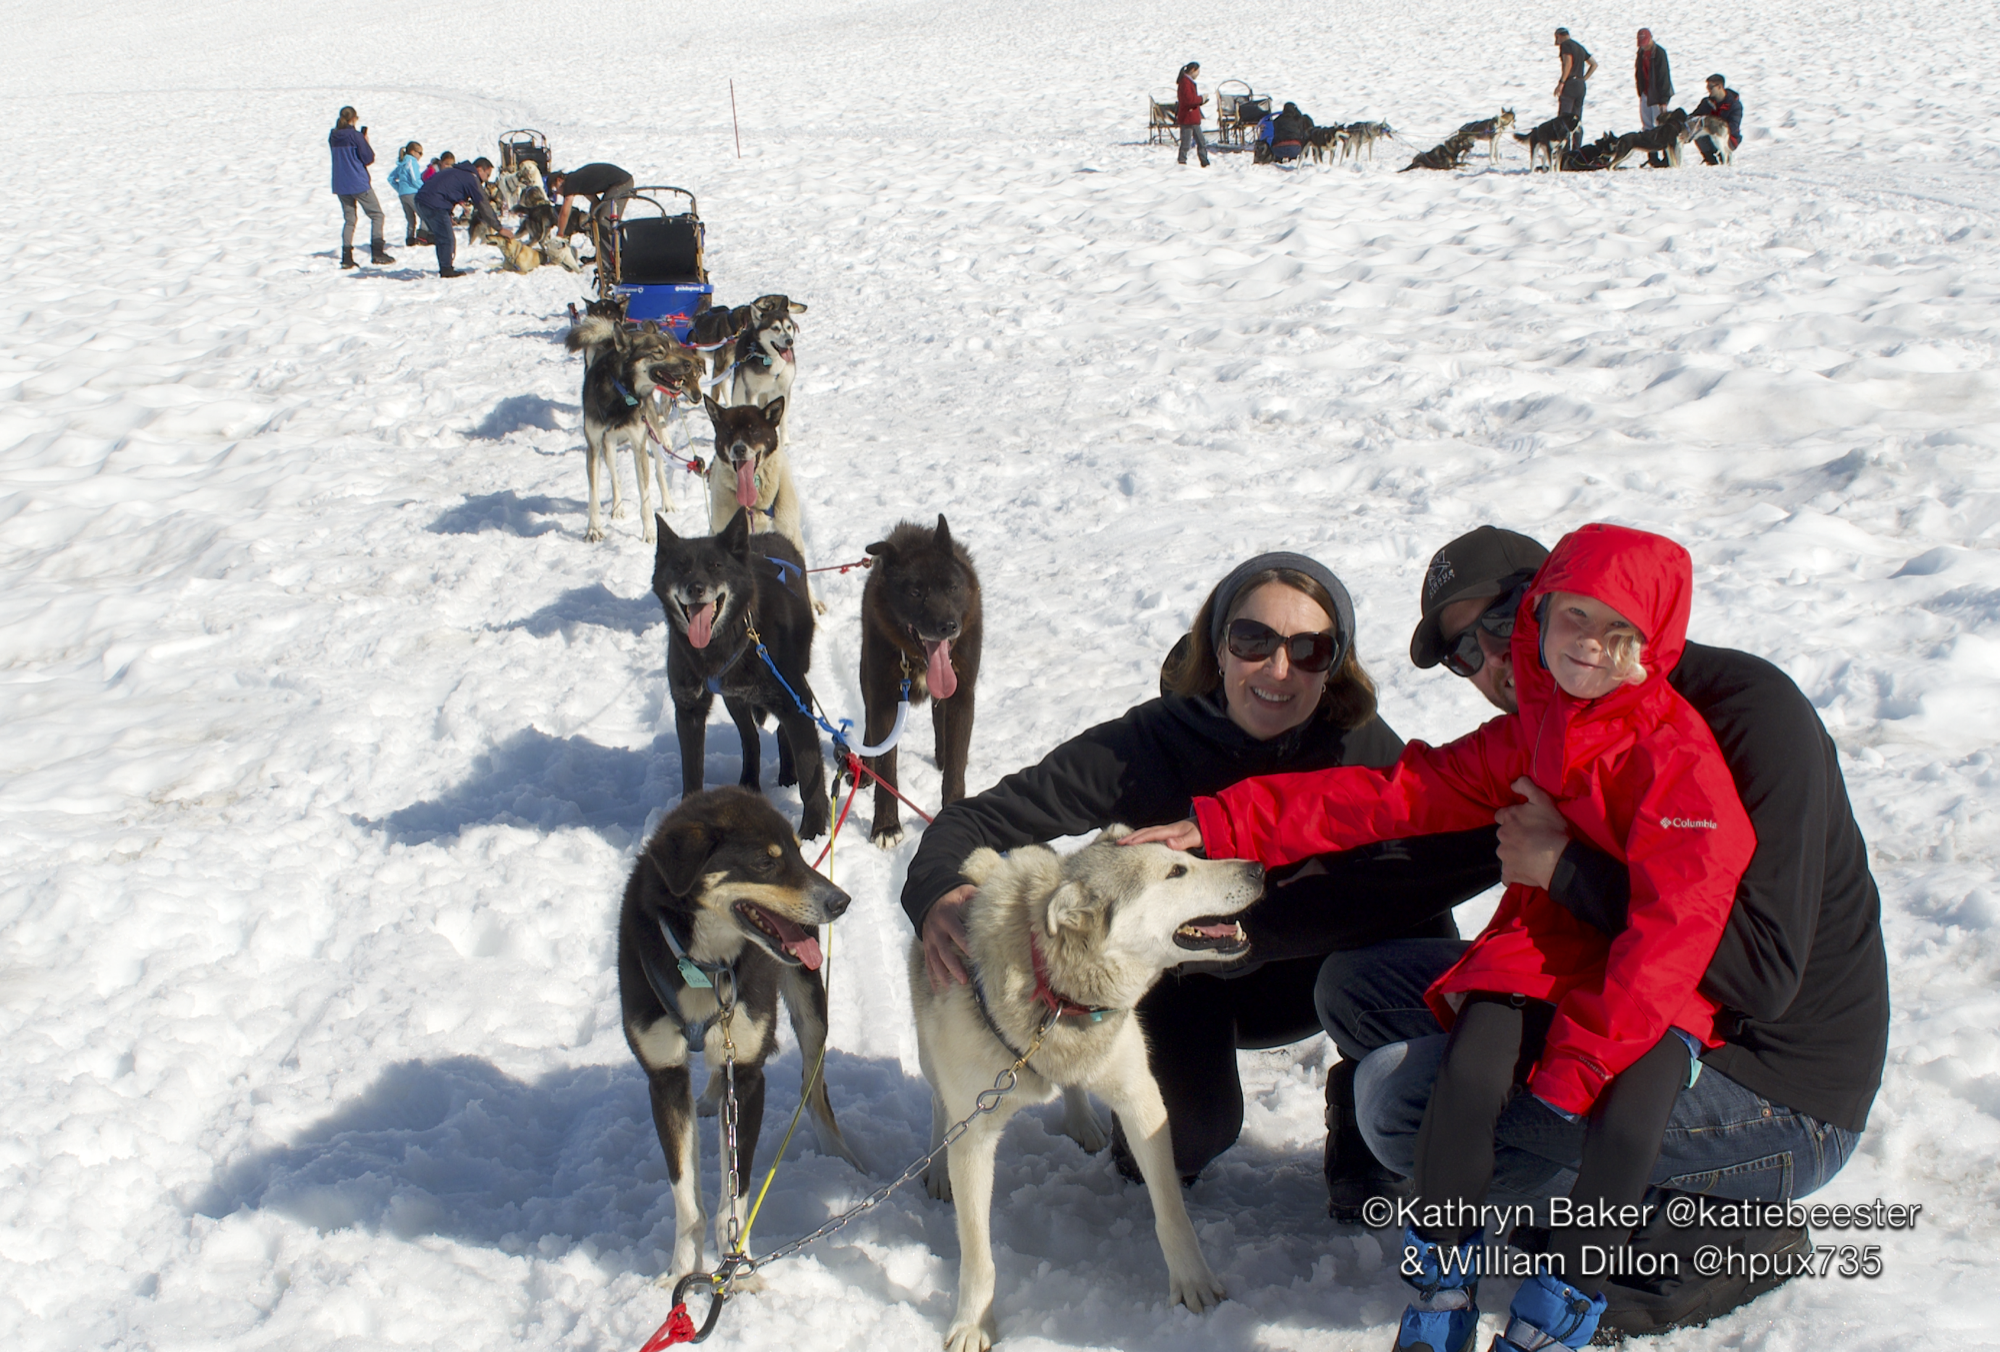 Petting Sled-dogs